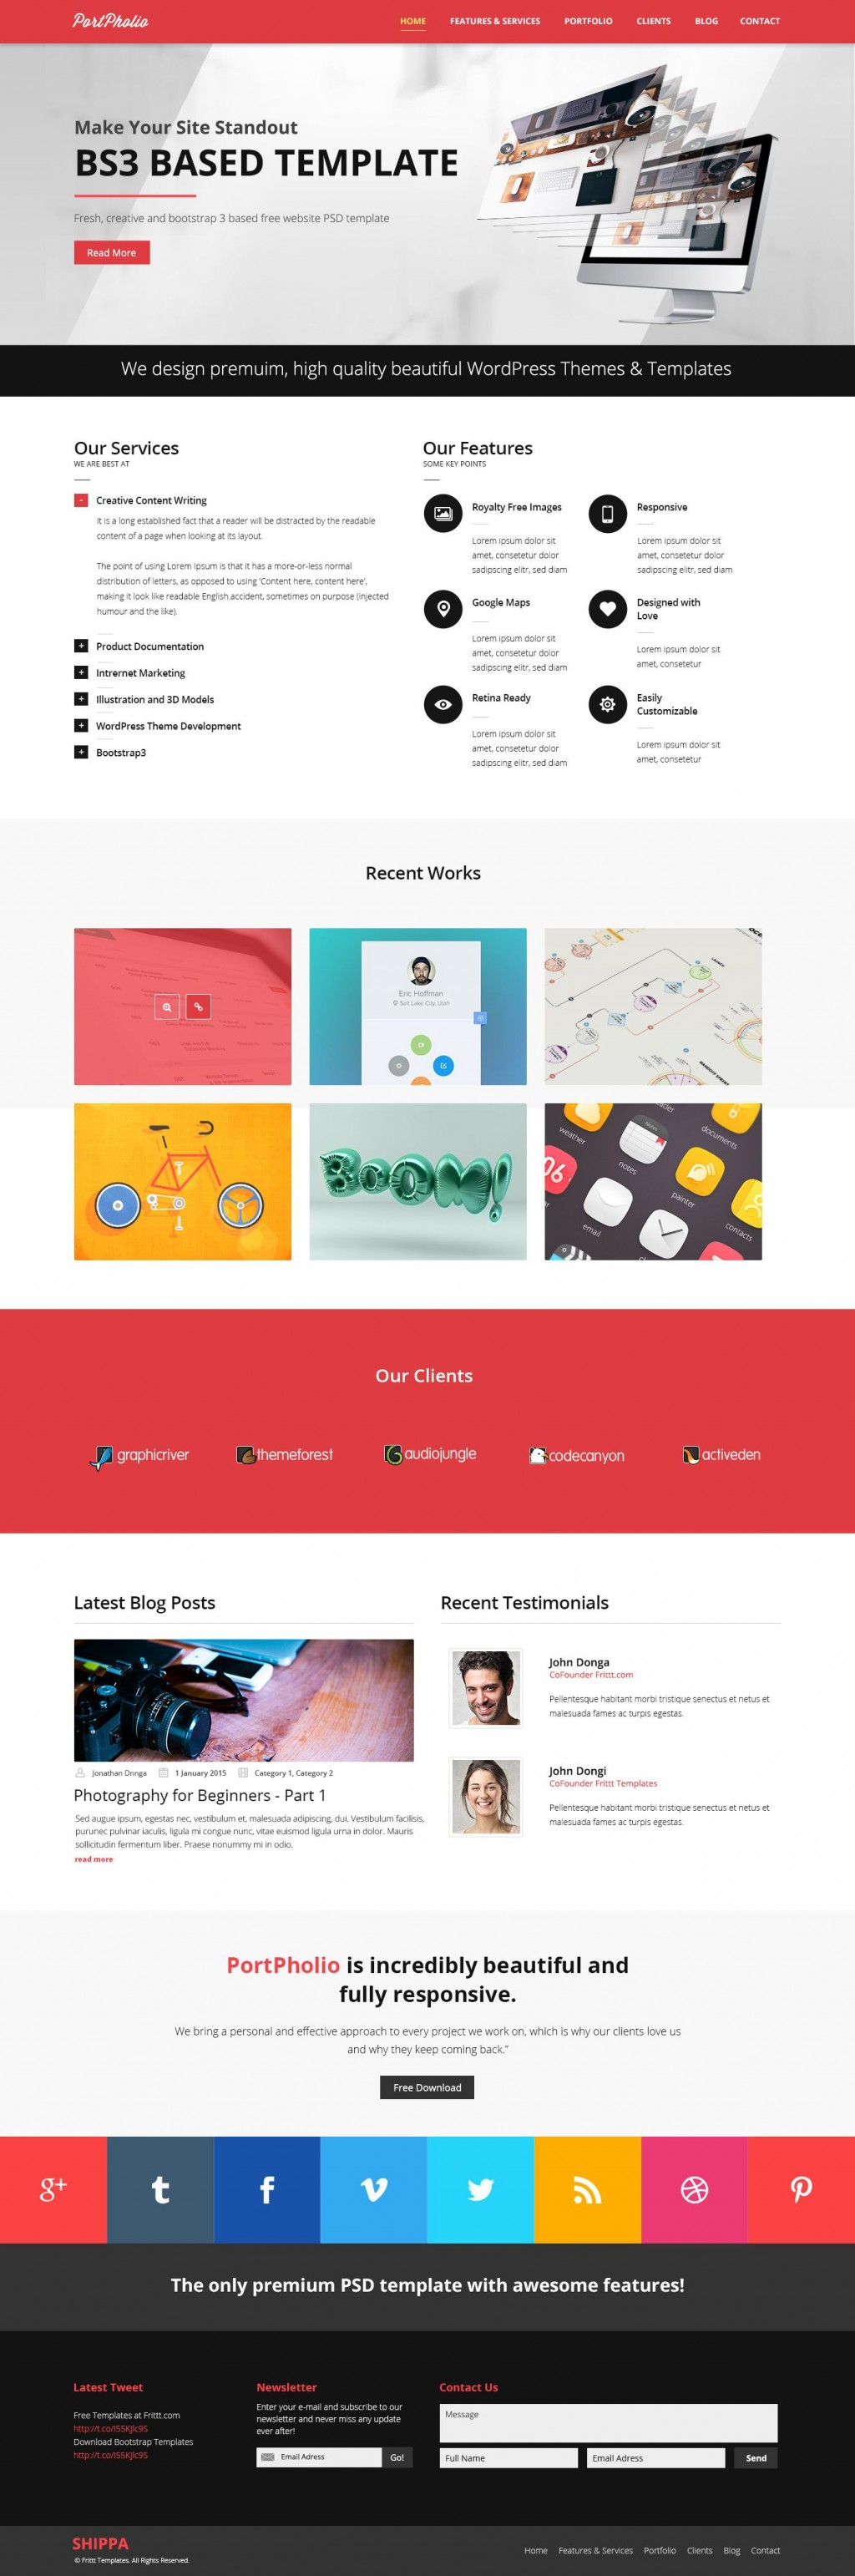 003 Rare One Page Website Template Psd Free Download Sample Large